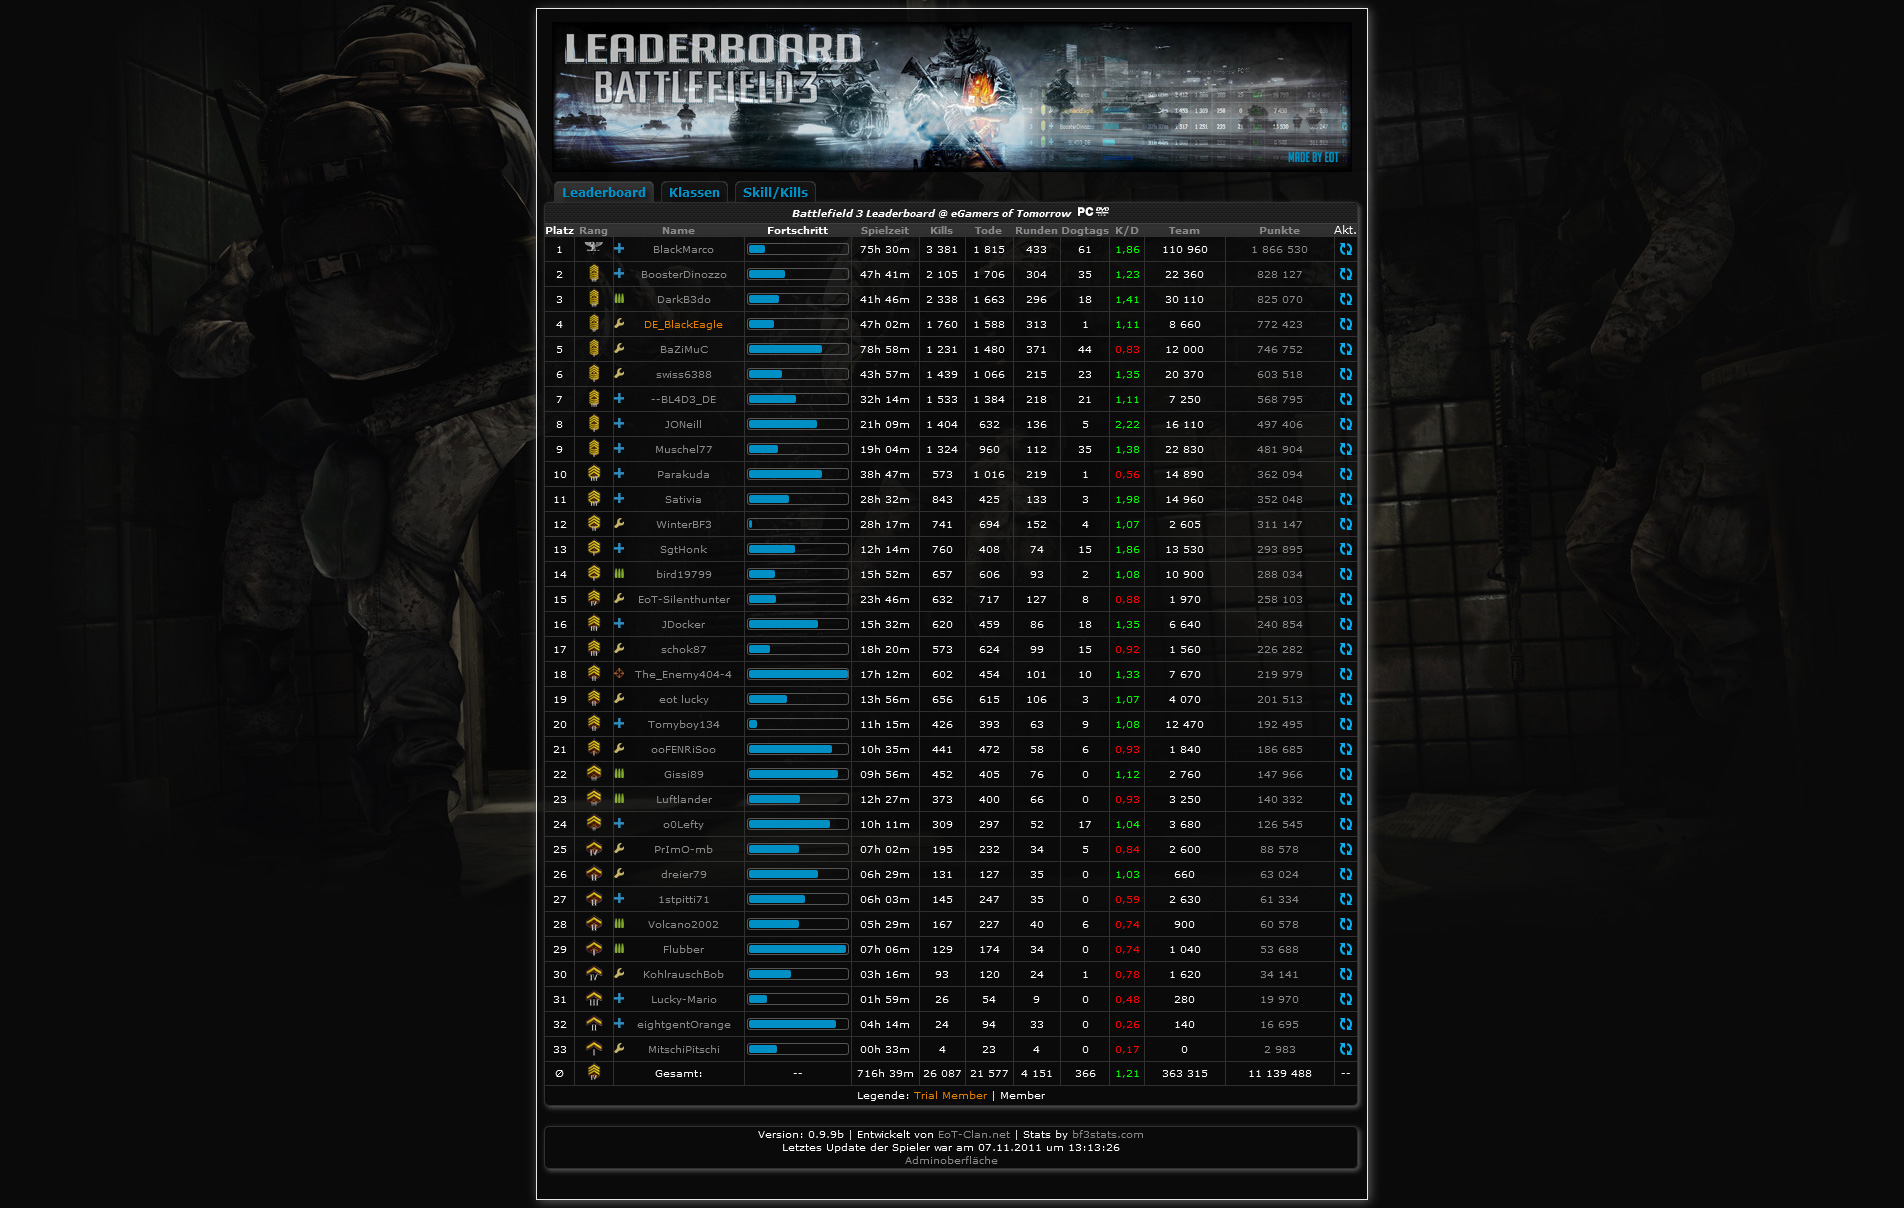 BF3 Leaderboard